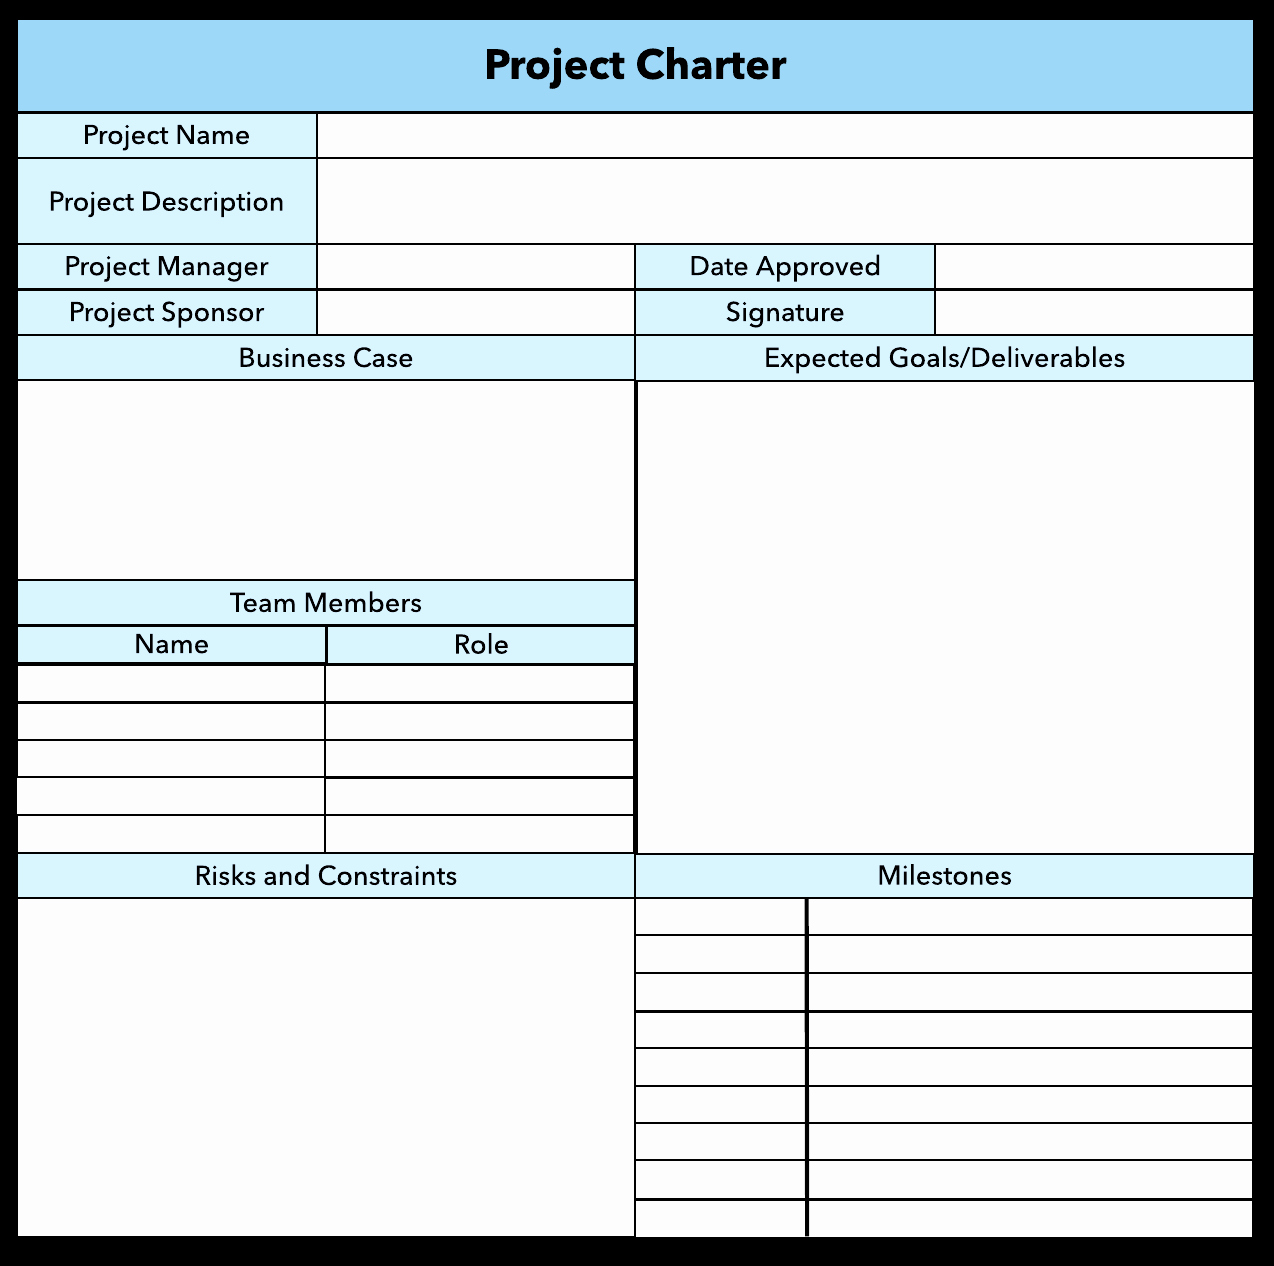 Company Charter Example Lovely How to Write A Winning Project Charter